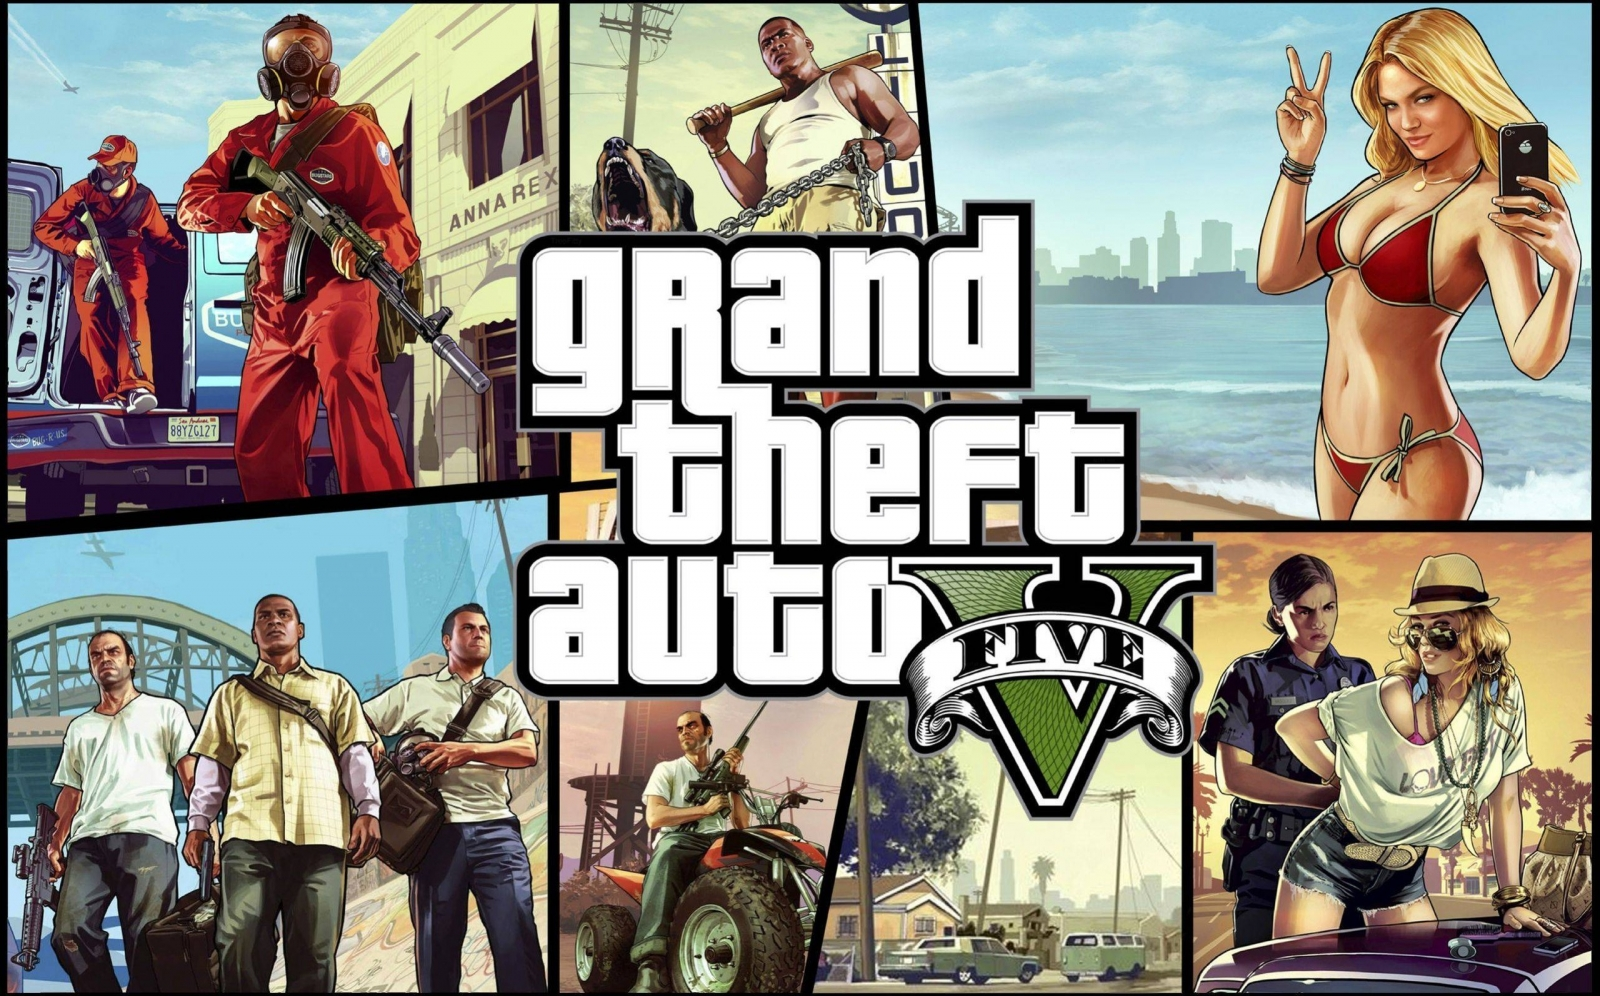 GTA 5 Next-Gen: New Exclusive Unlockable Rear Cars and Rare Vehicle Prices Revealed